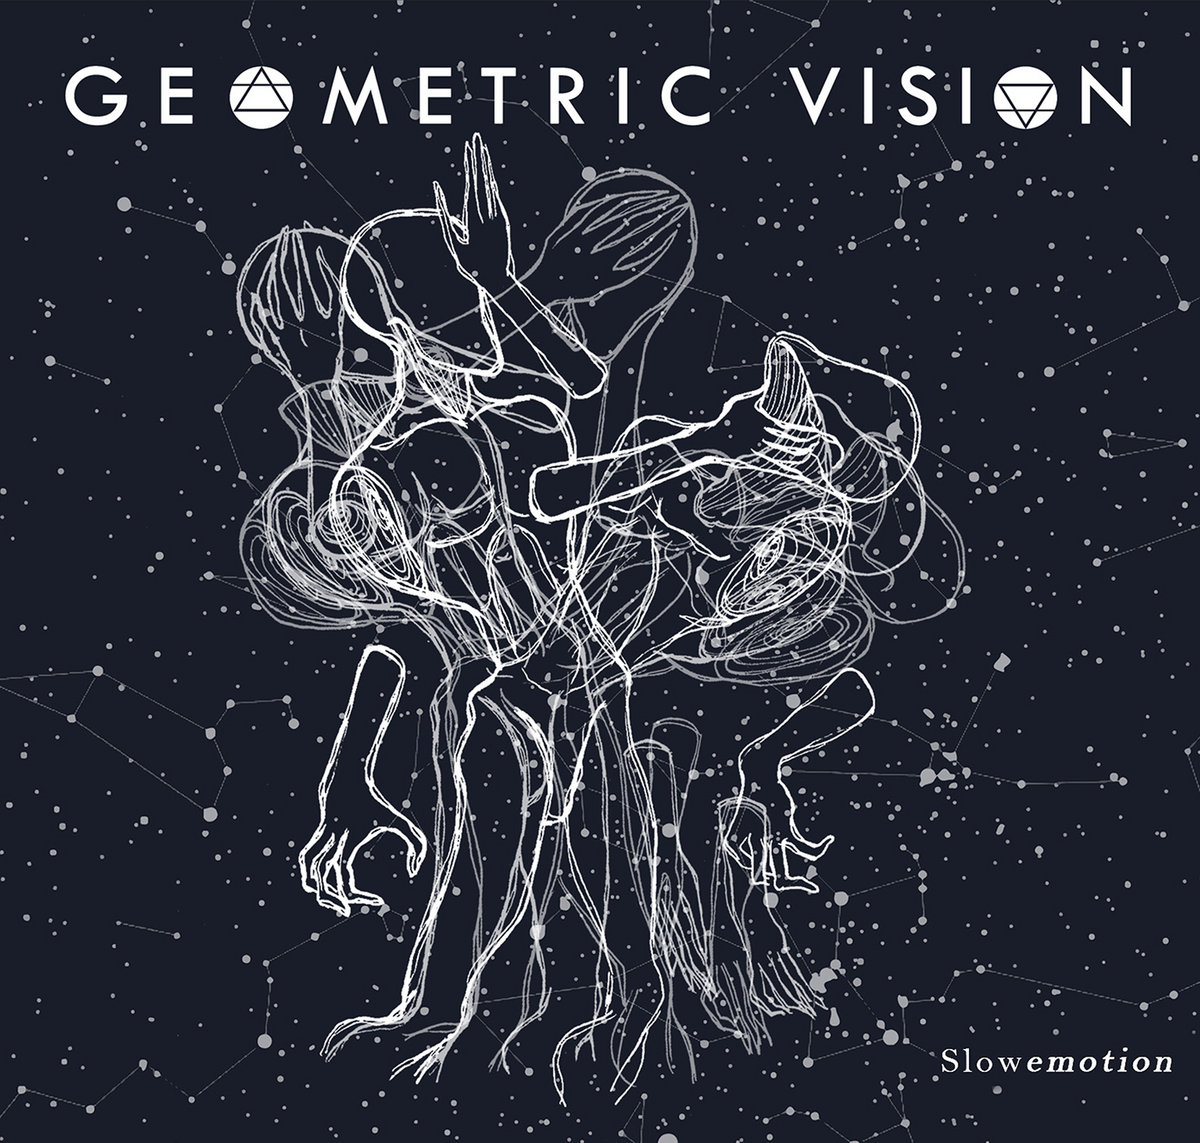 Post-punk shivers – Geometric Vision – Slowemotion